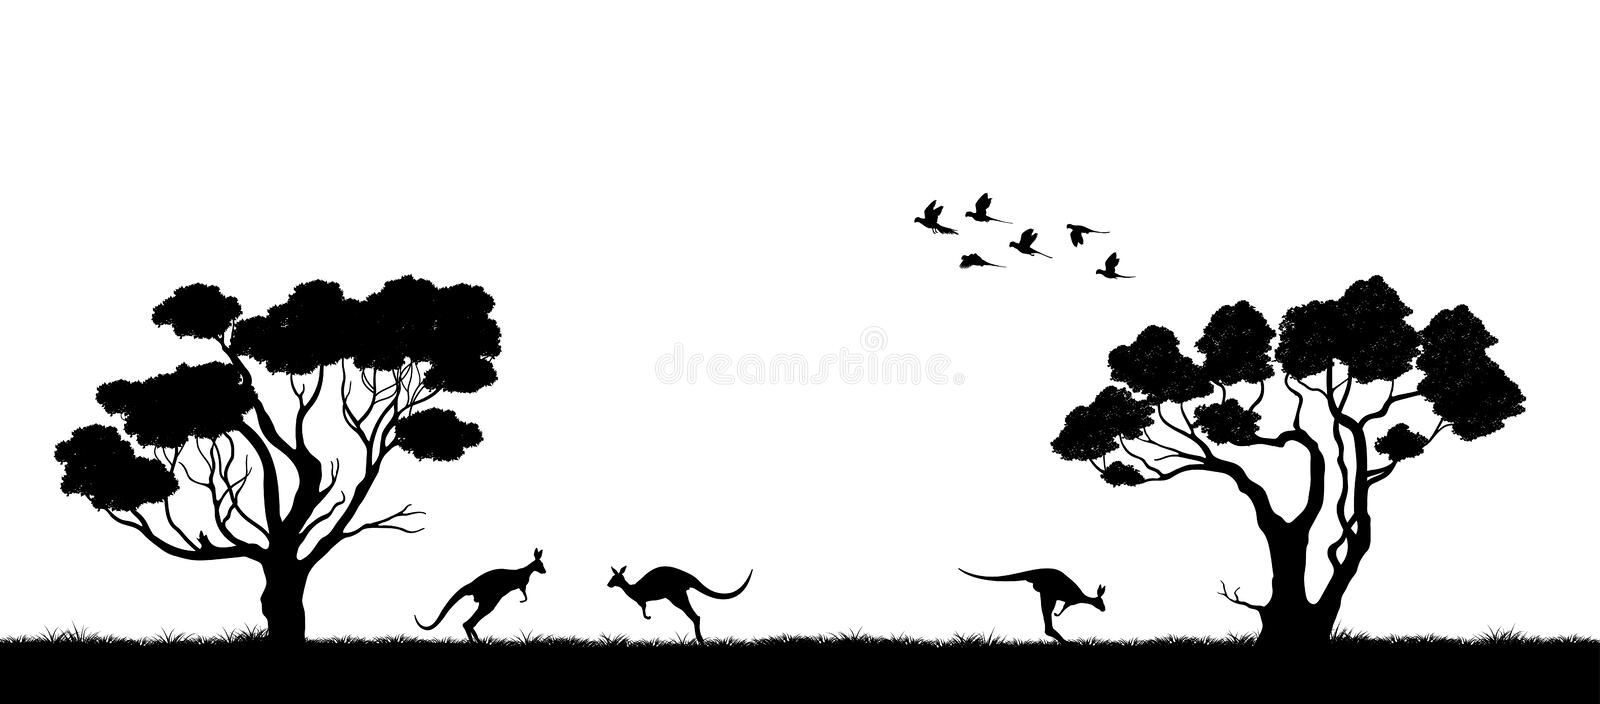 Australian landscape. Black silhouette of trees and kangaroo on white background. The nature of Australia. Isolated vector graphic vector illustration